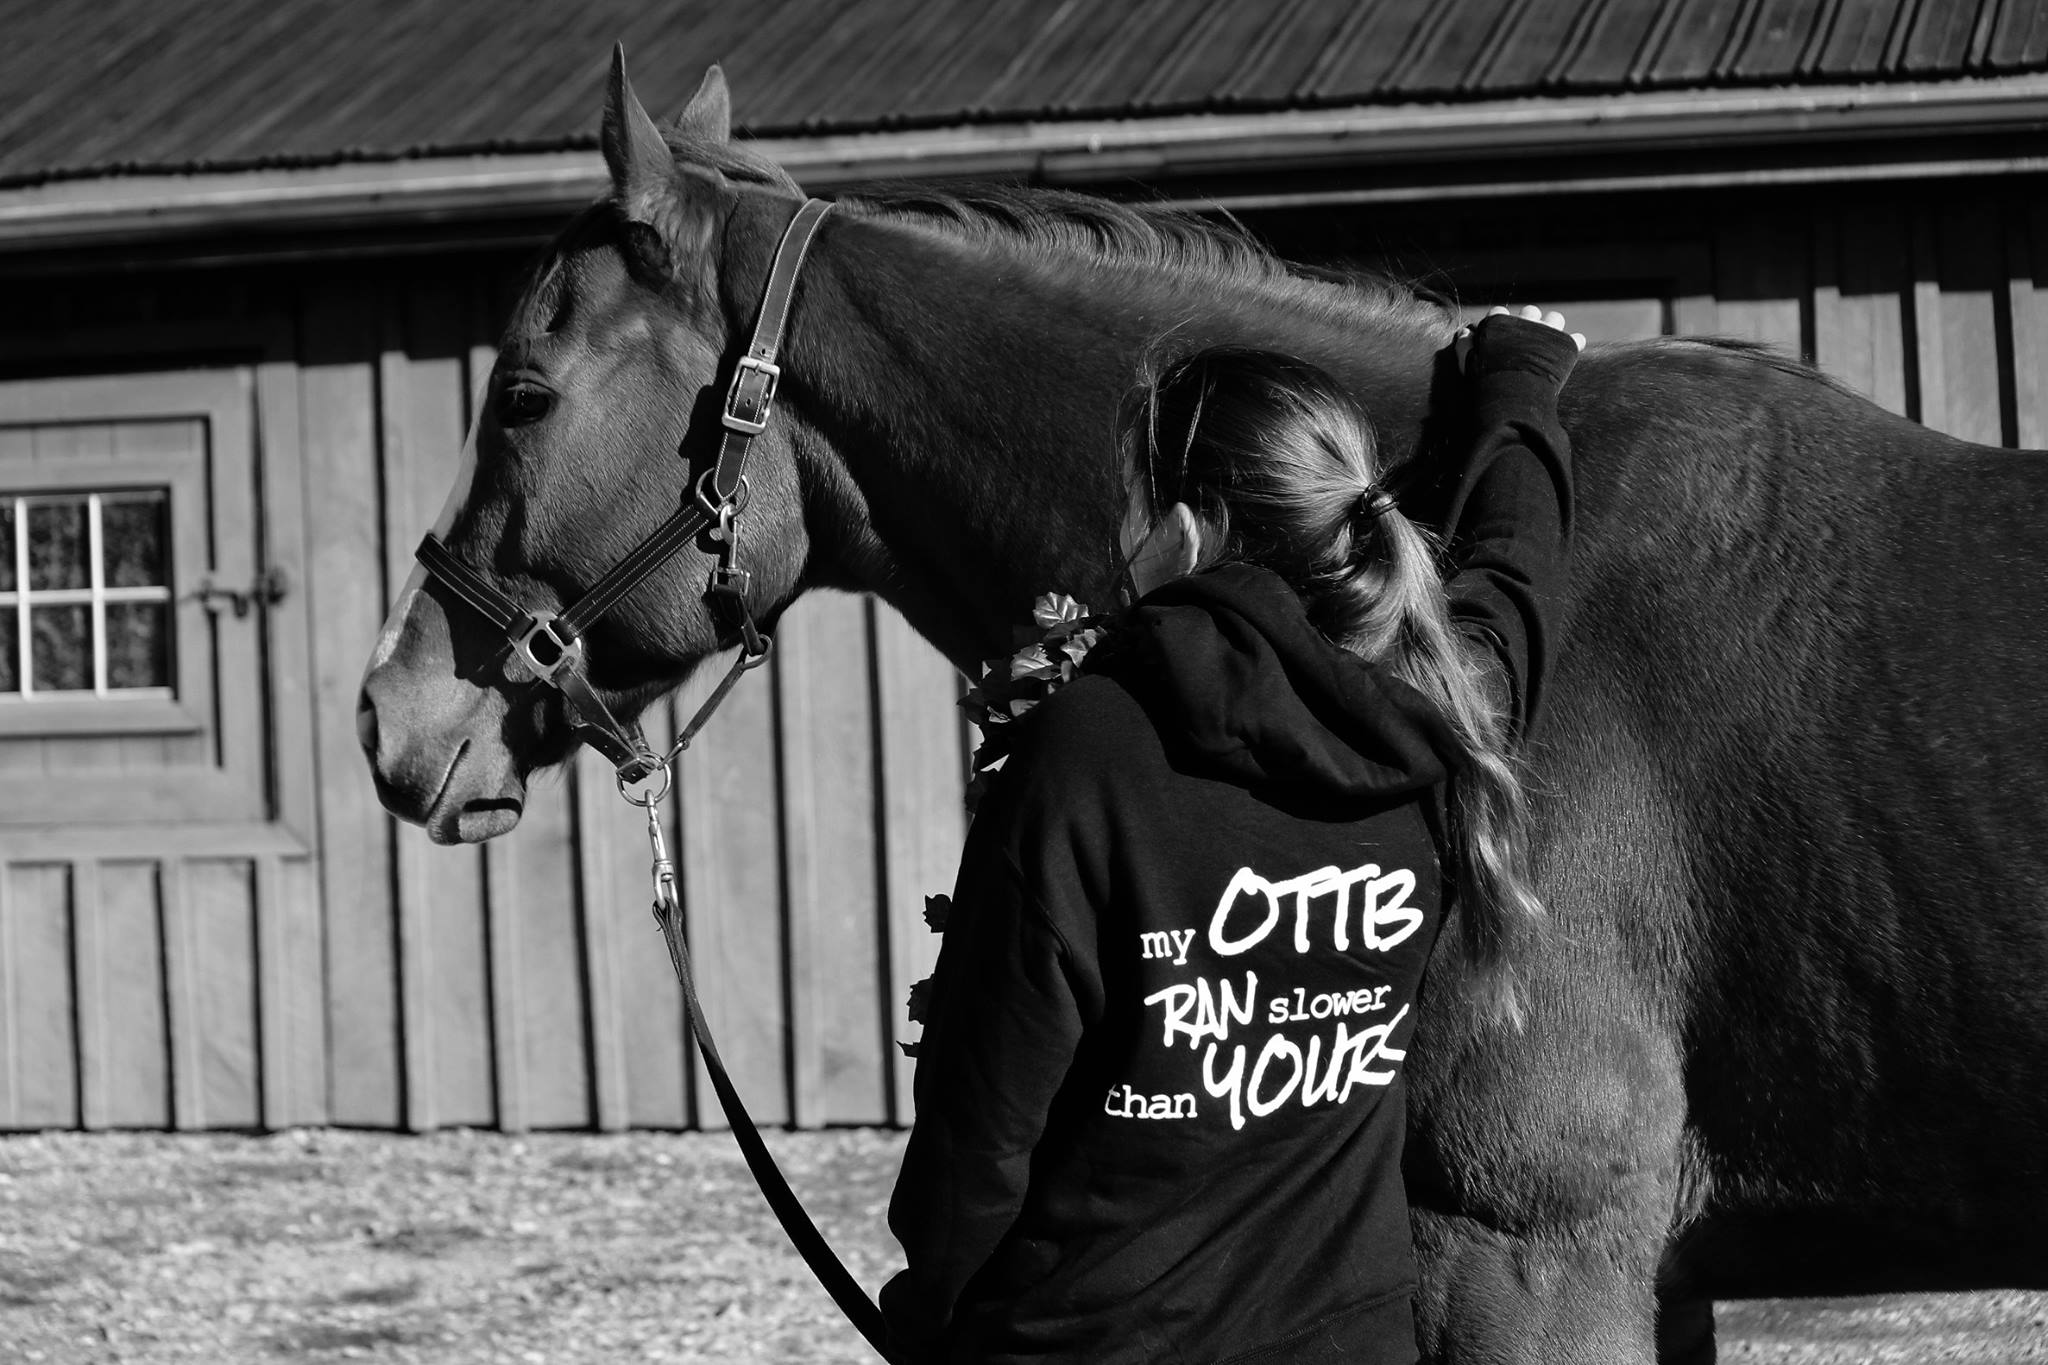 My OTTB ran SLOWER than yours Hoodie